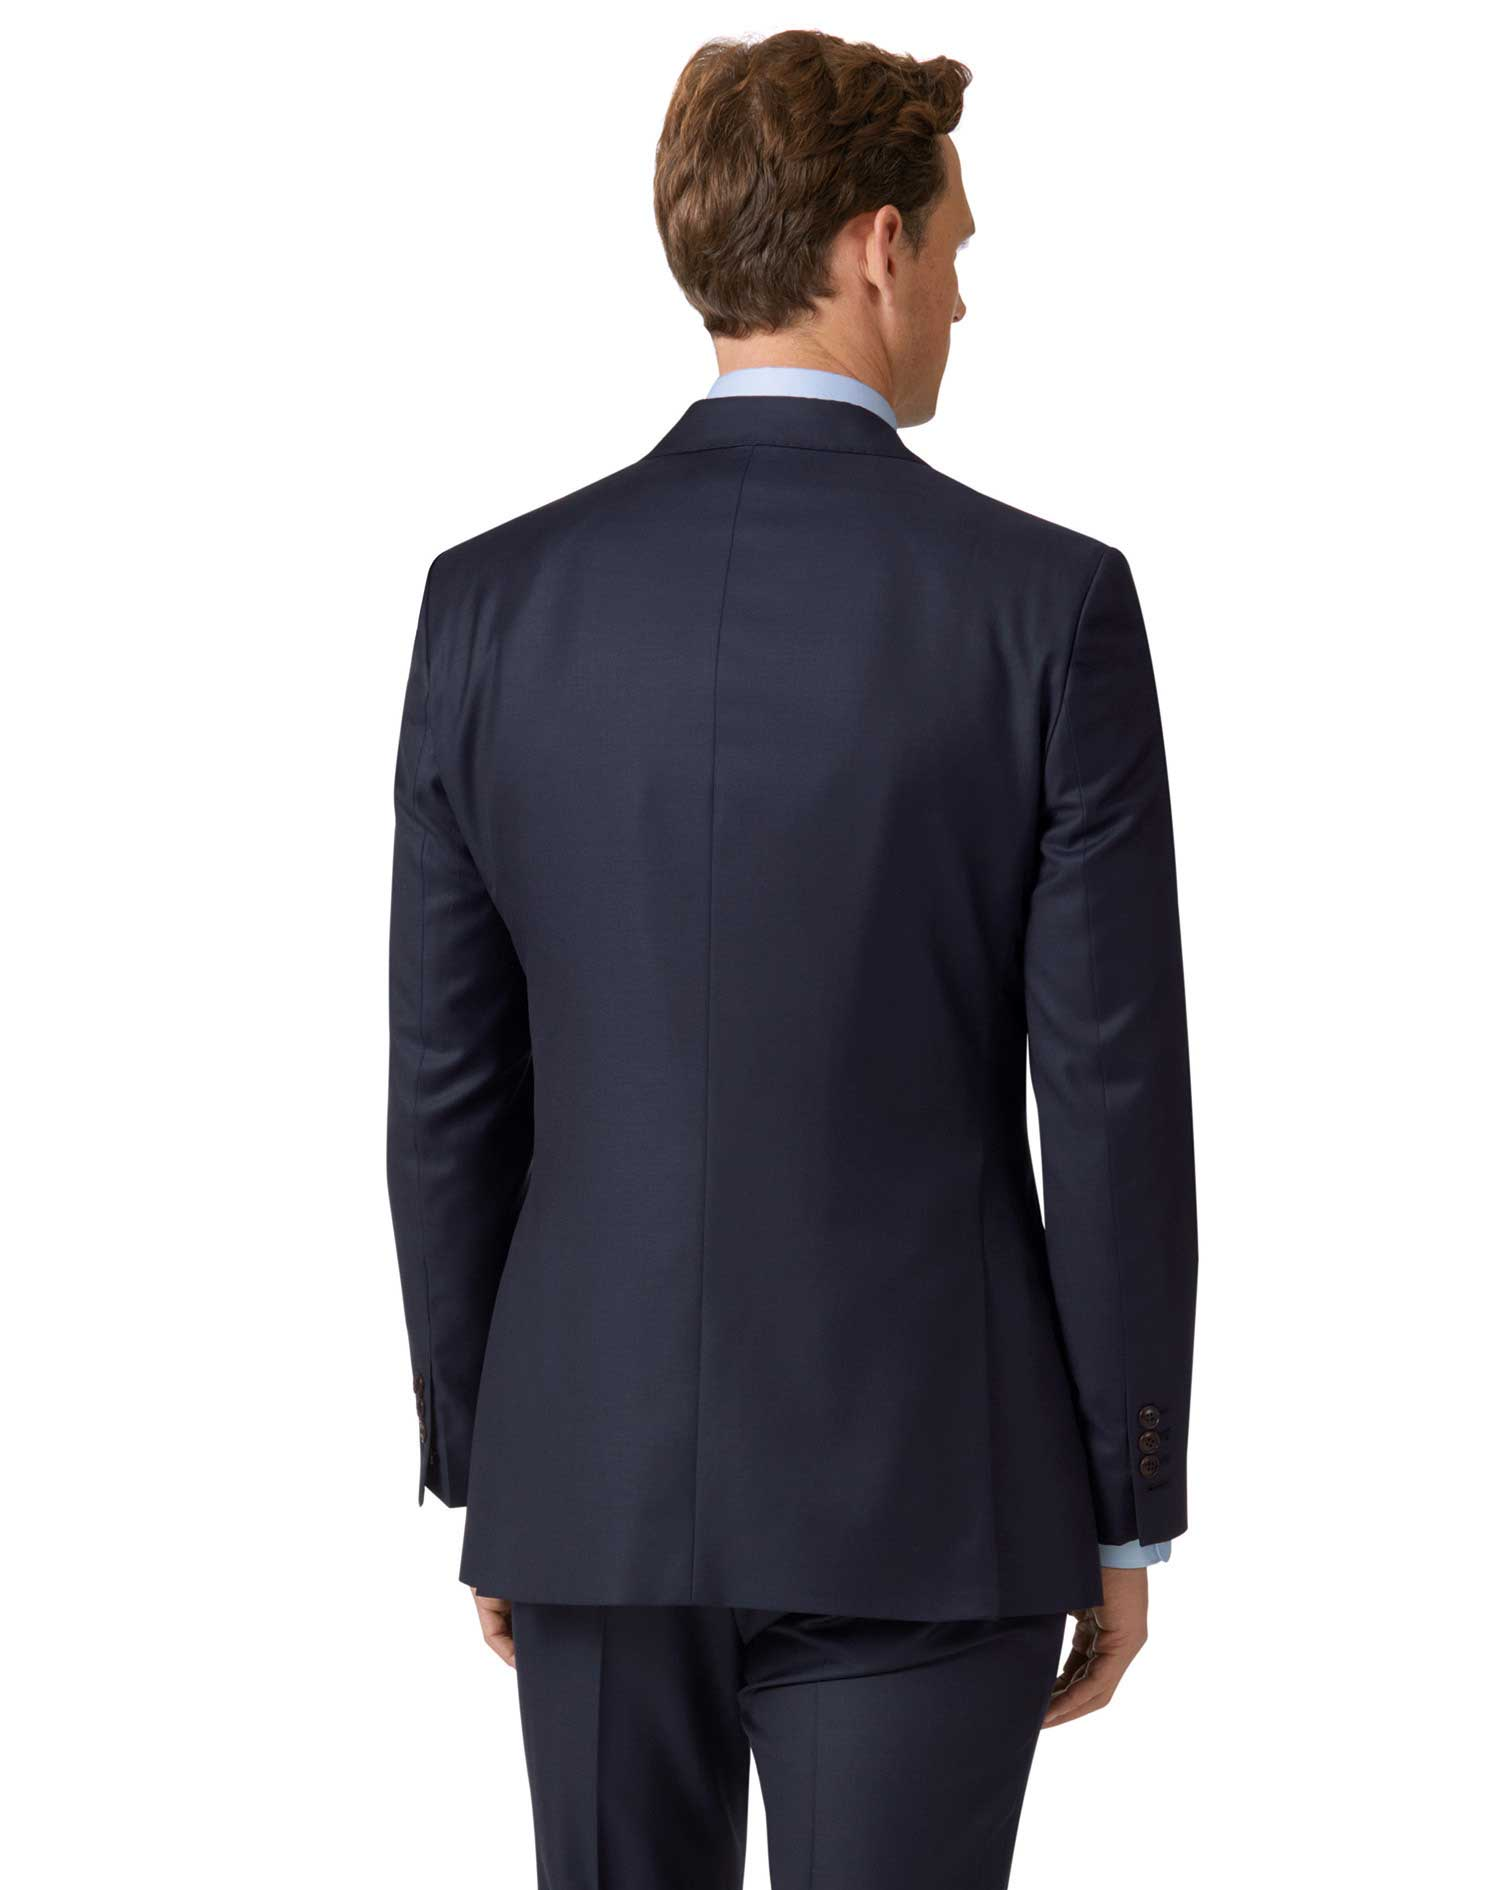 Navy slim fit Italian twill luxury suit jacket